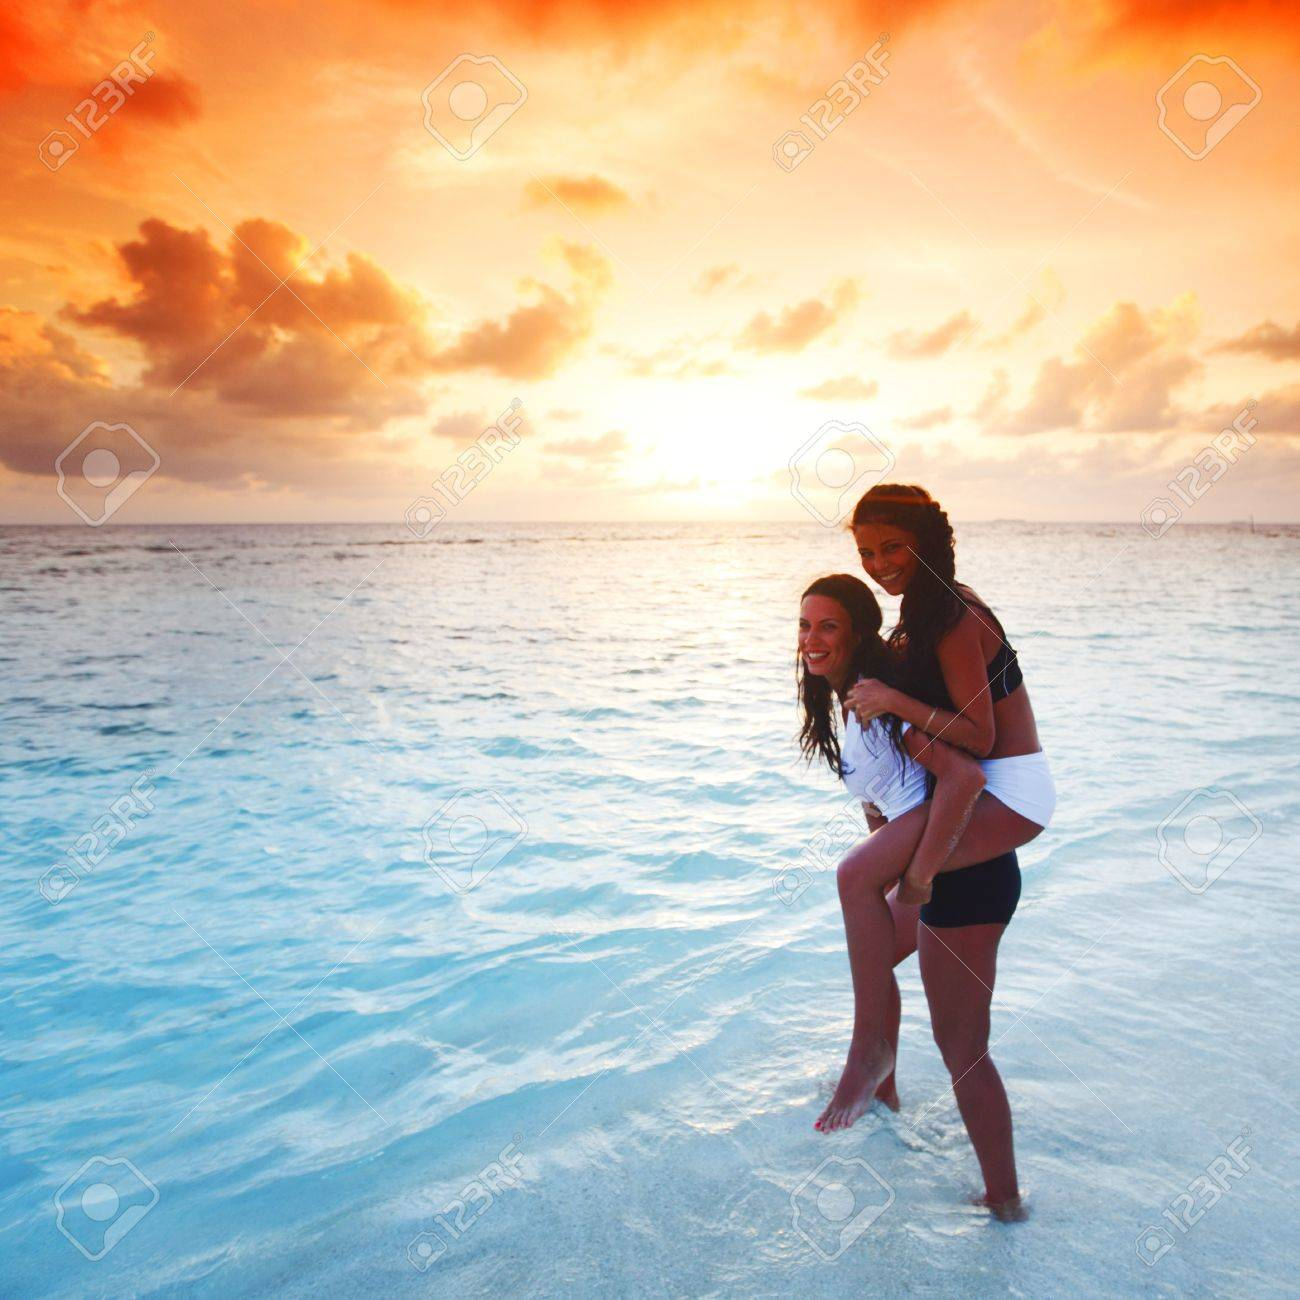 Two happy wimen playing in water on sunset Stock Photo - 15992408